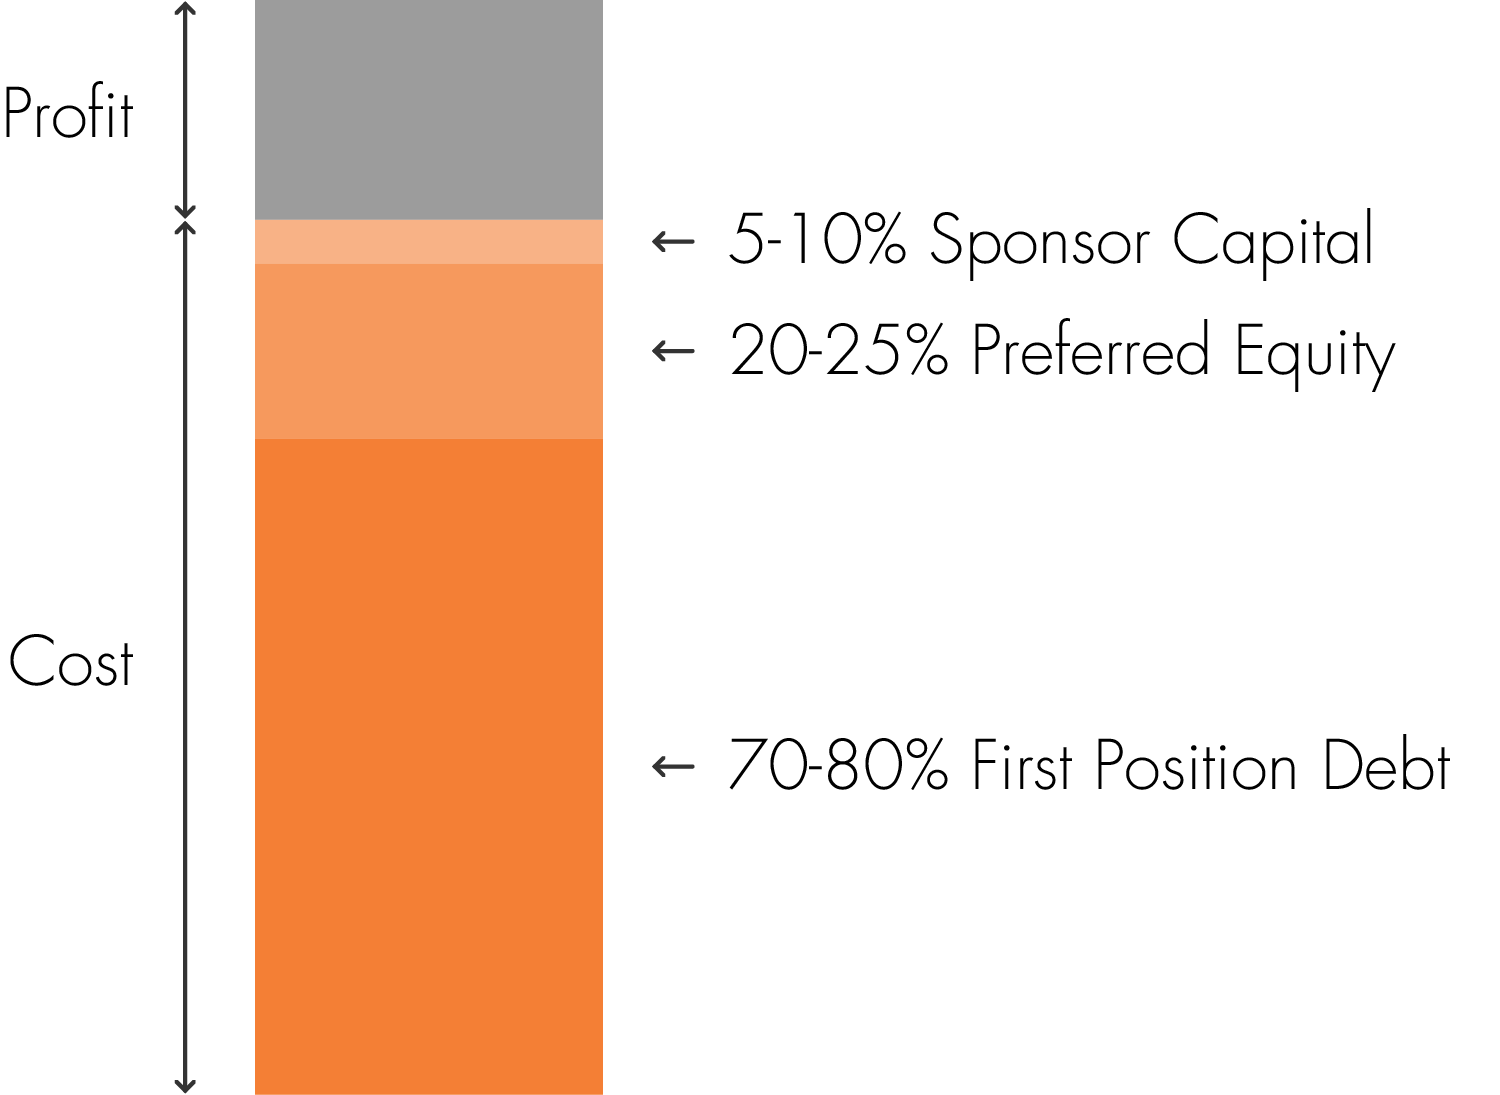 Graph showing cost to profit ratio. 70-80% fist position debt; 20-25% Preferred Equity, 5-10% Sponsor Capital